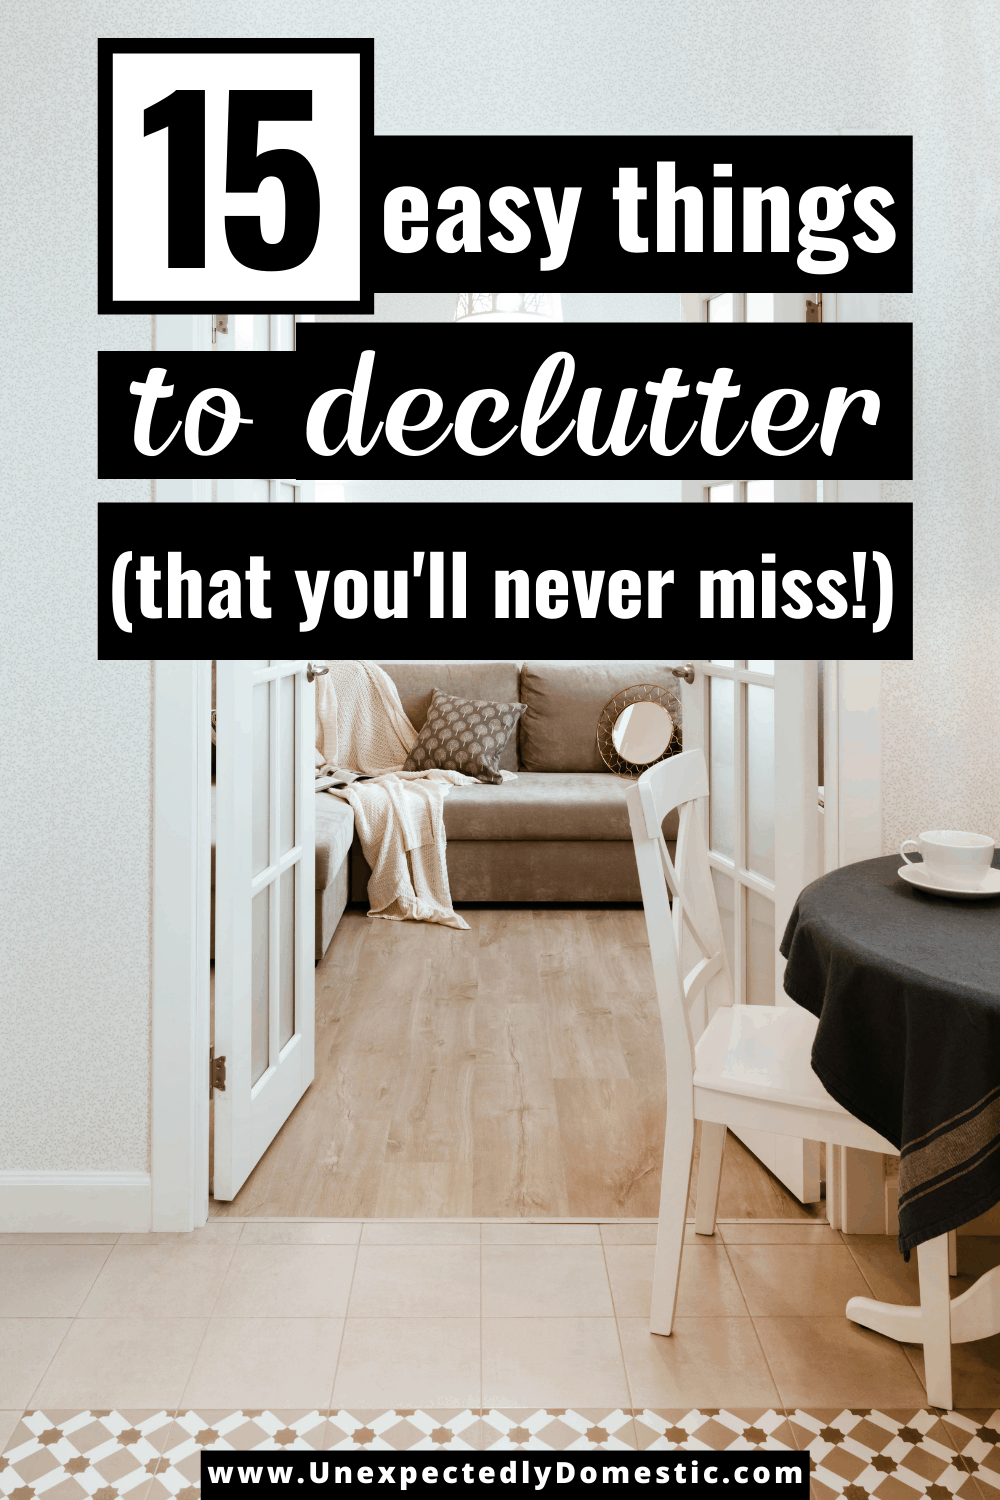 15 of the easiest things to declutter! Forget starting with the hardest things - start with this SIMPLE list of things to declutter...and watch your momentum grow!